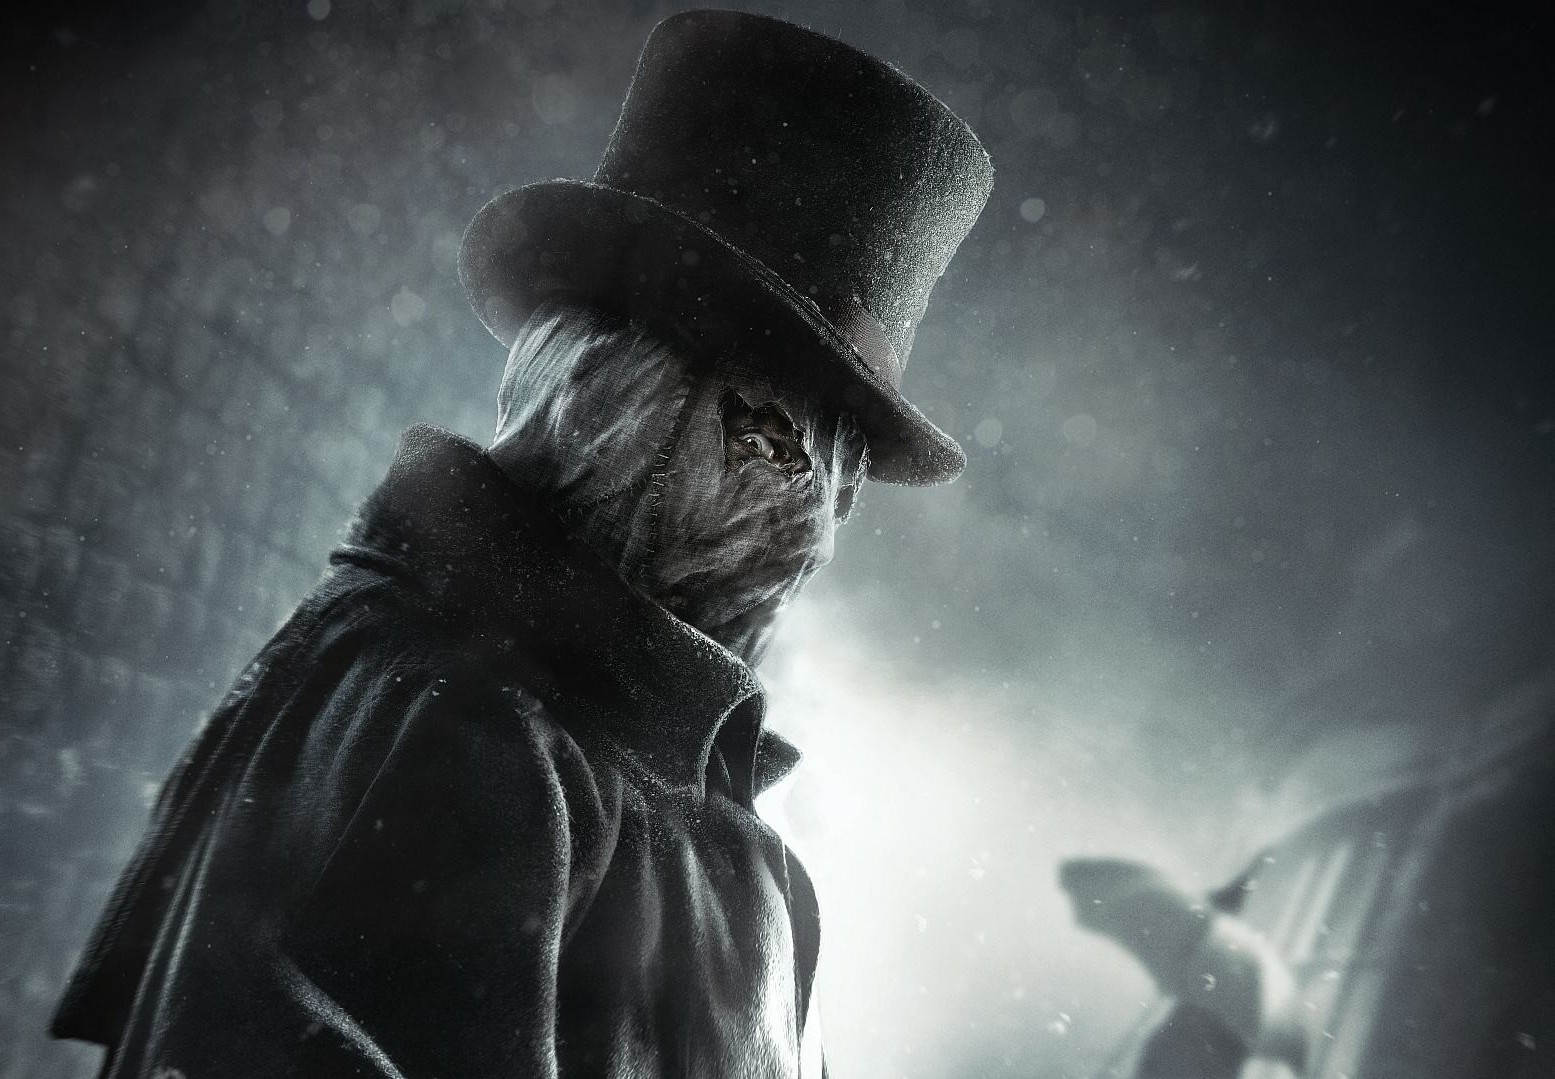 Assassin's Creed: Syndicate / Nightmare Fuel - TV Tropes